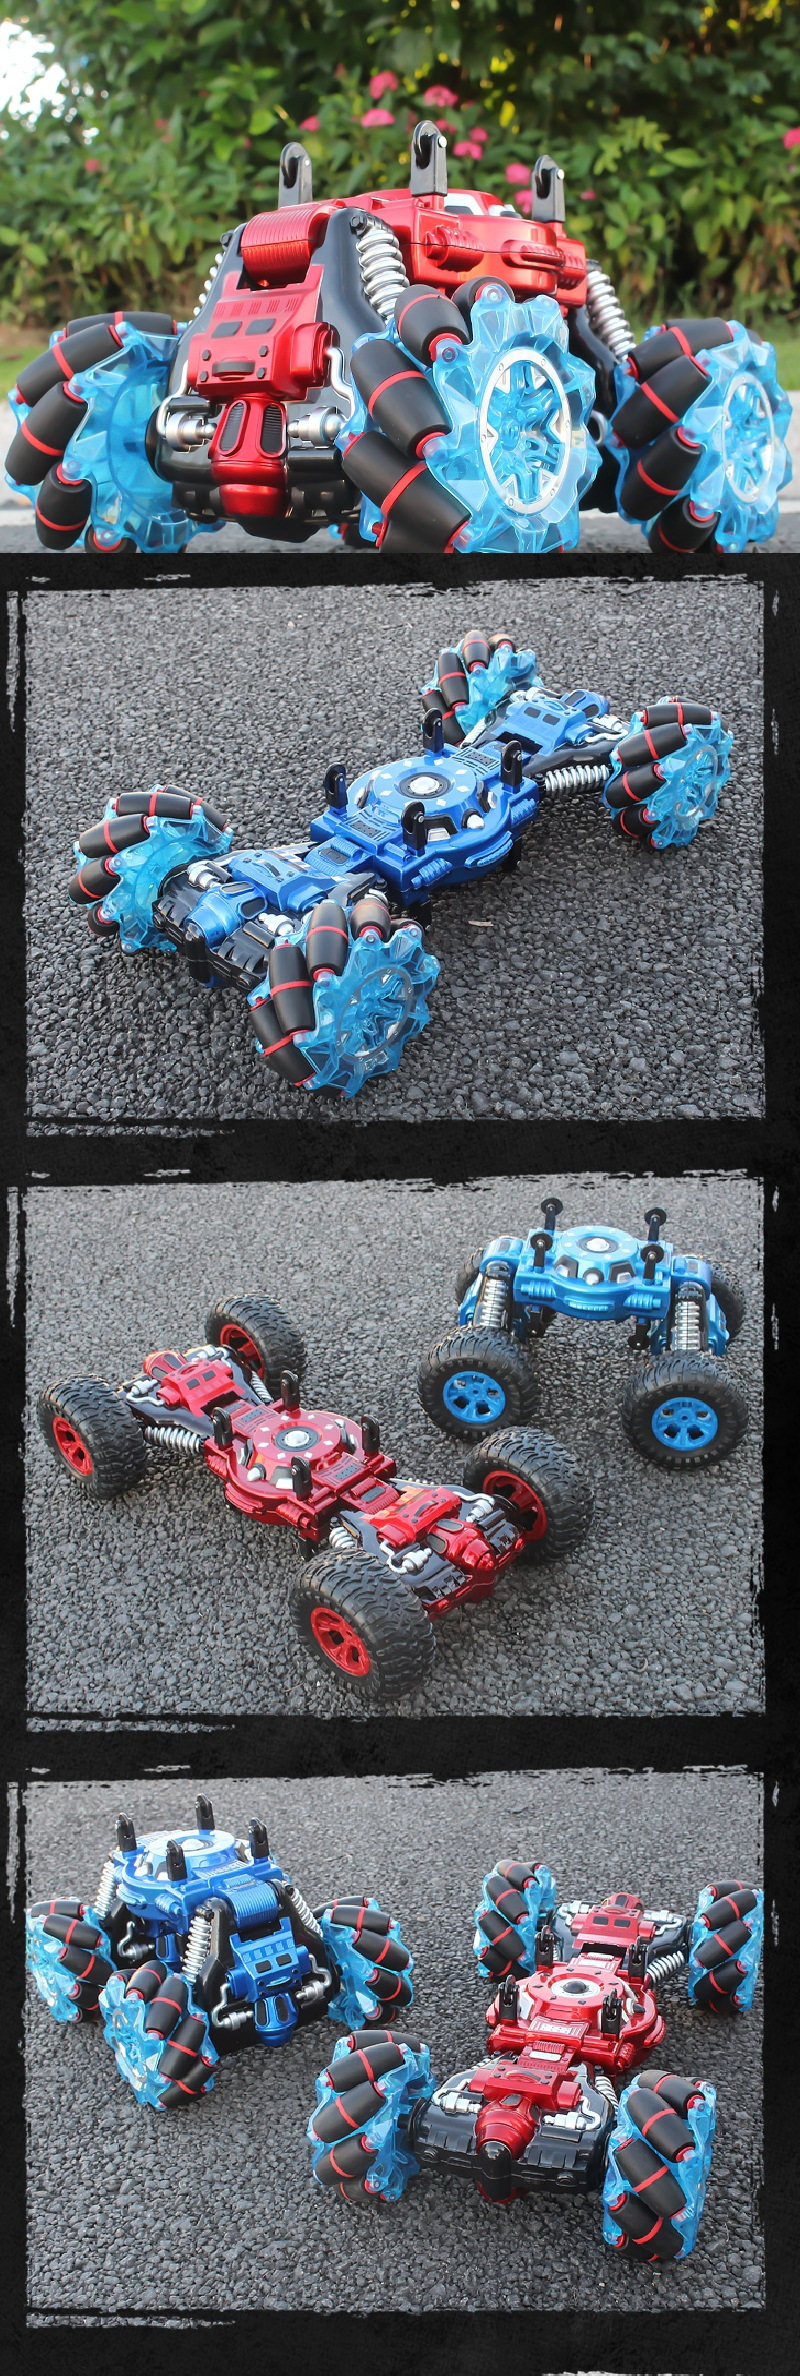 1:10 Scale 4WD Transforming RC Twist Stunt Car Remote Control Double Sided Climbing Drift Car